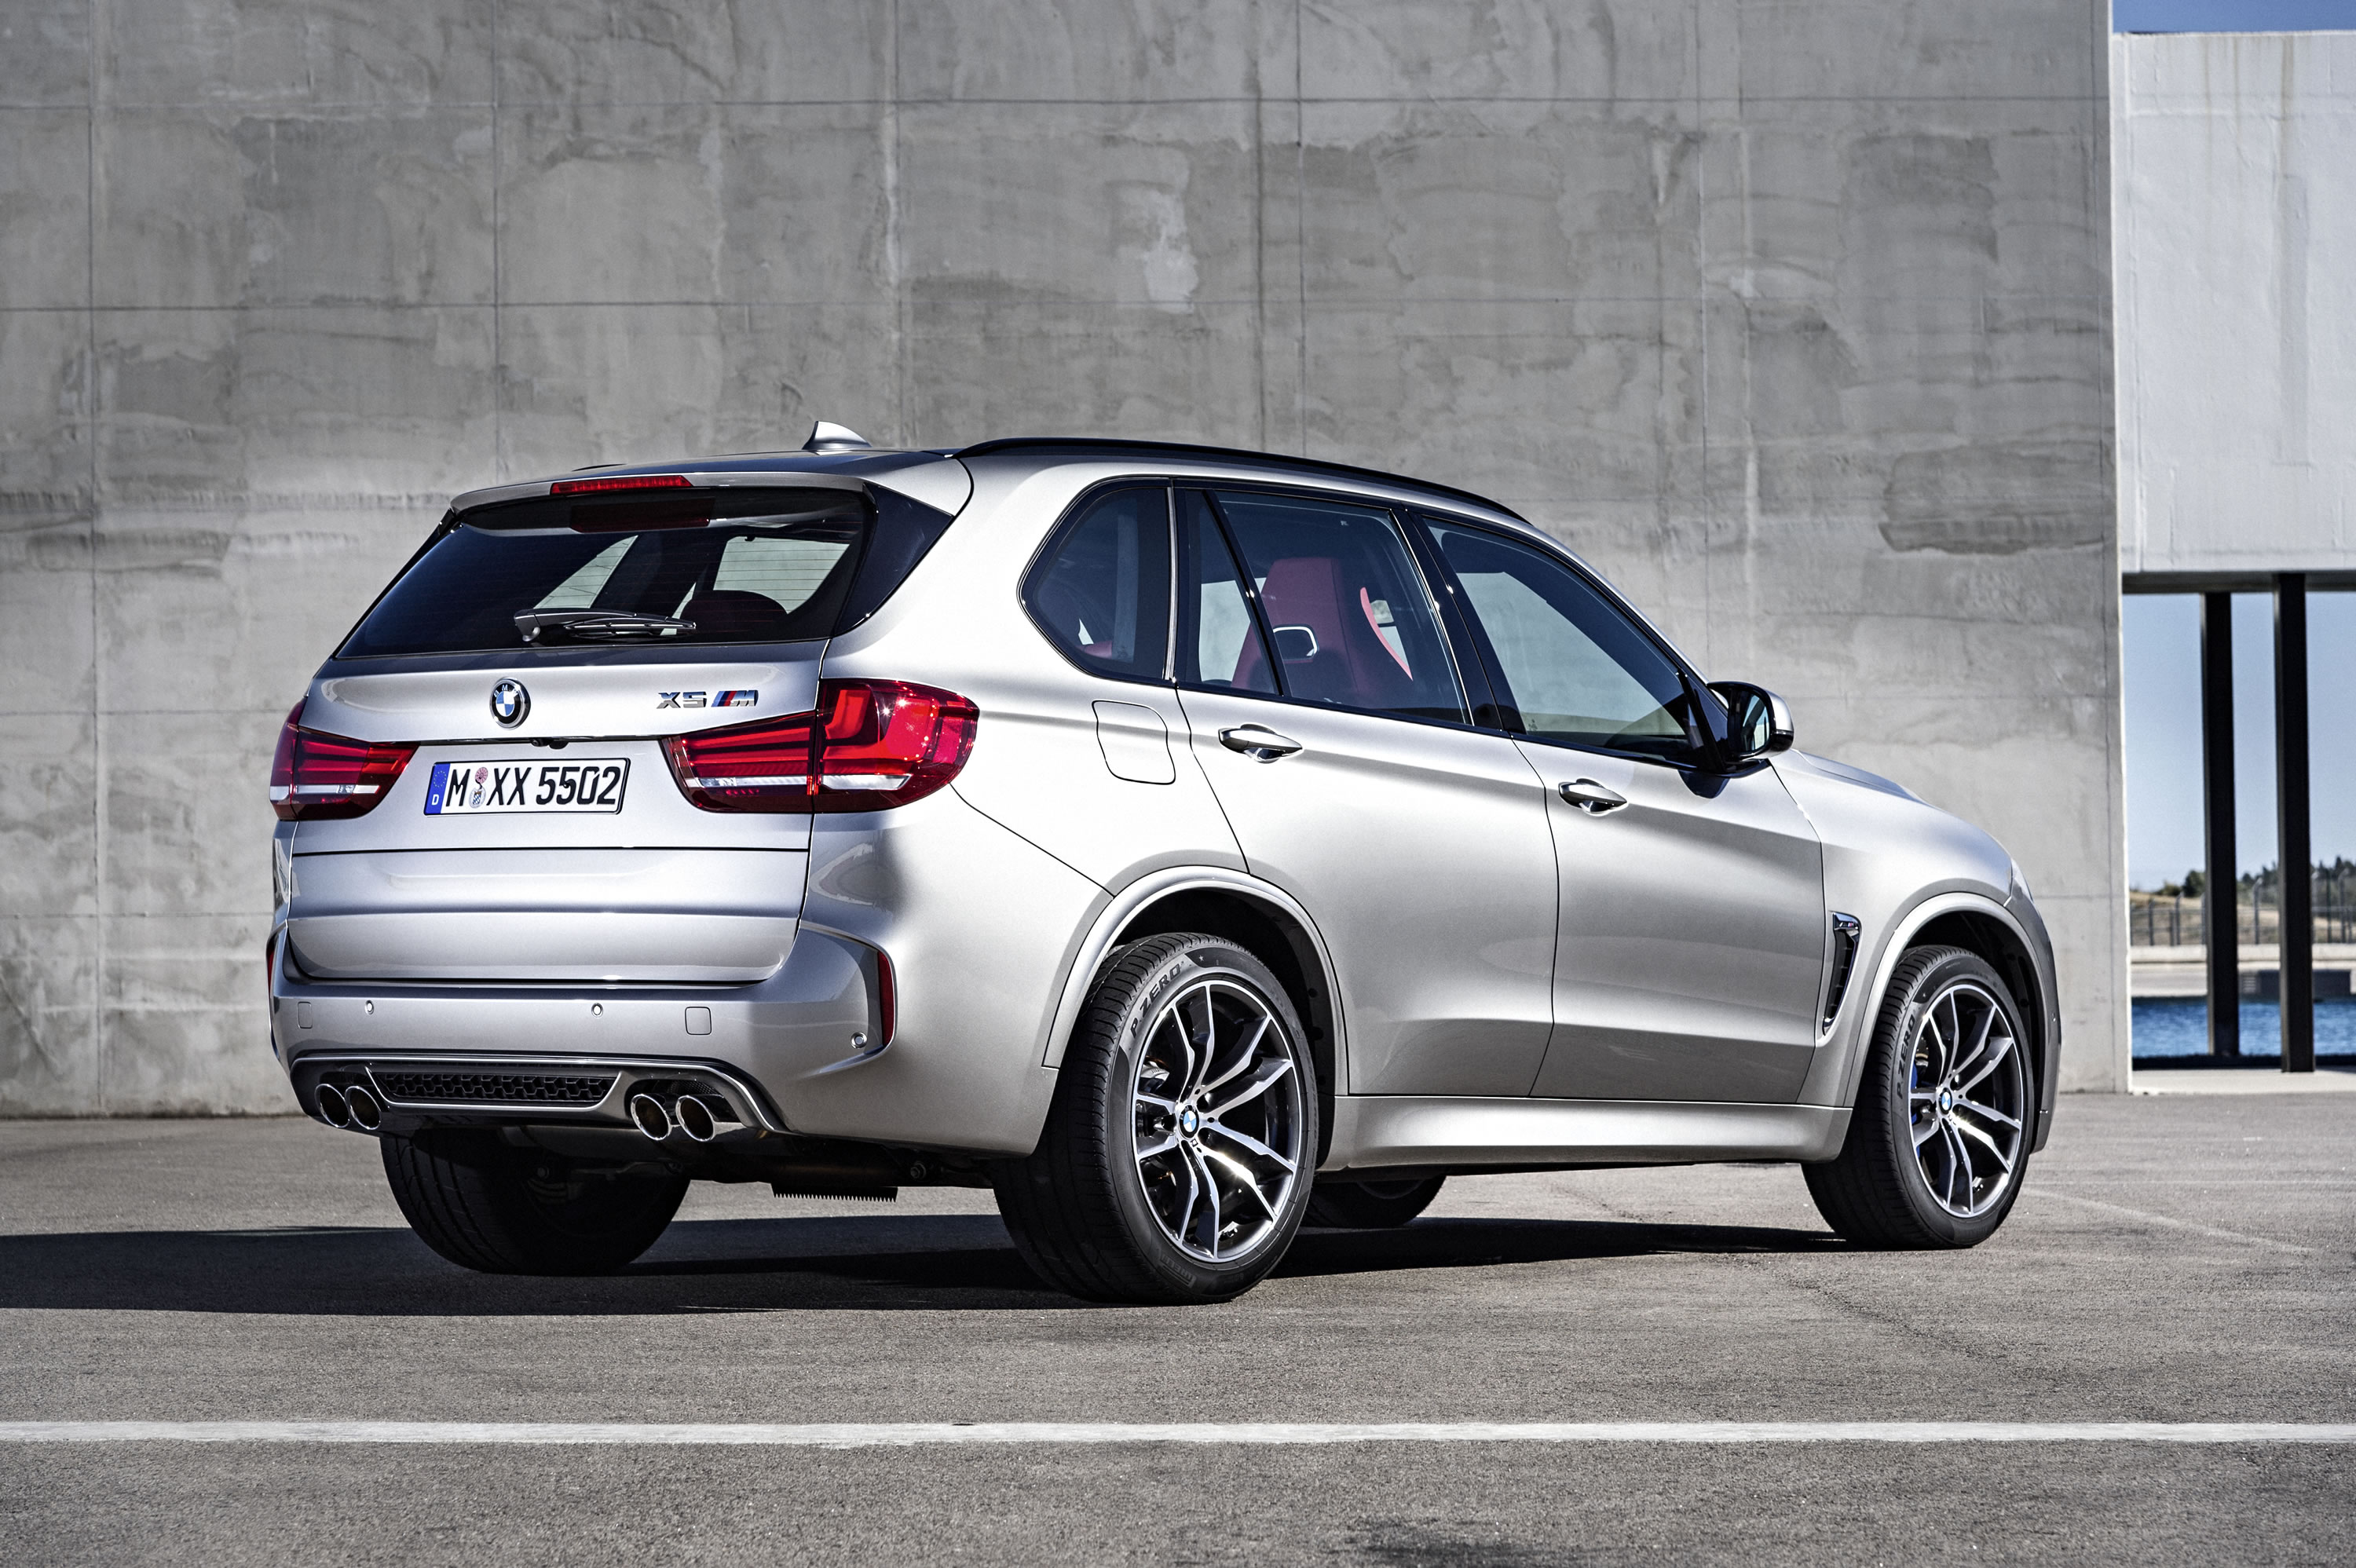 2015 Bmw X5 M Photos Specs And Review Rs